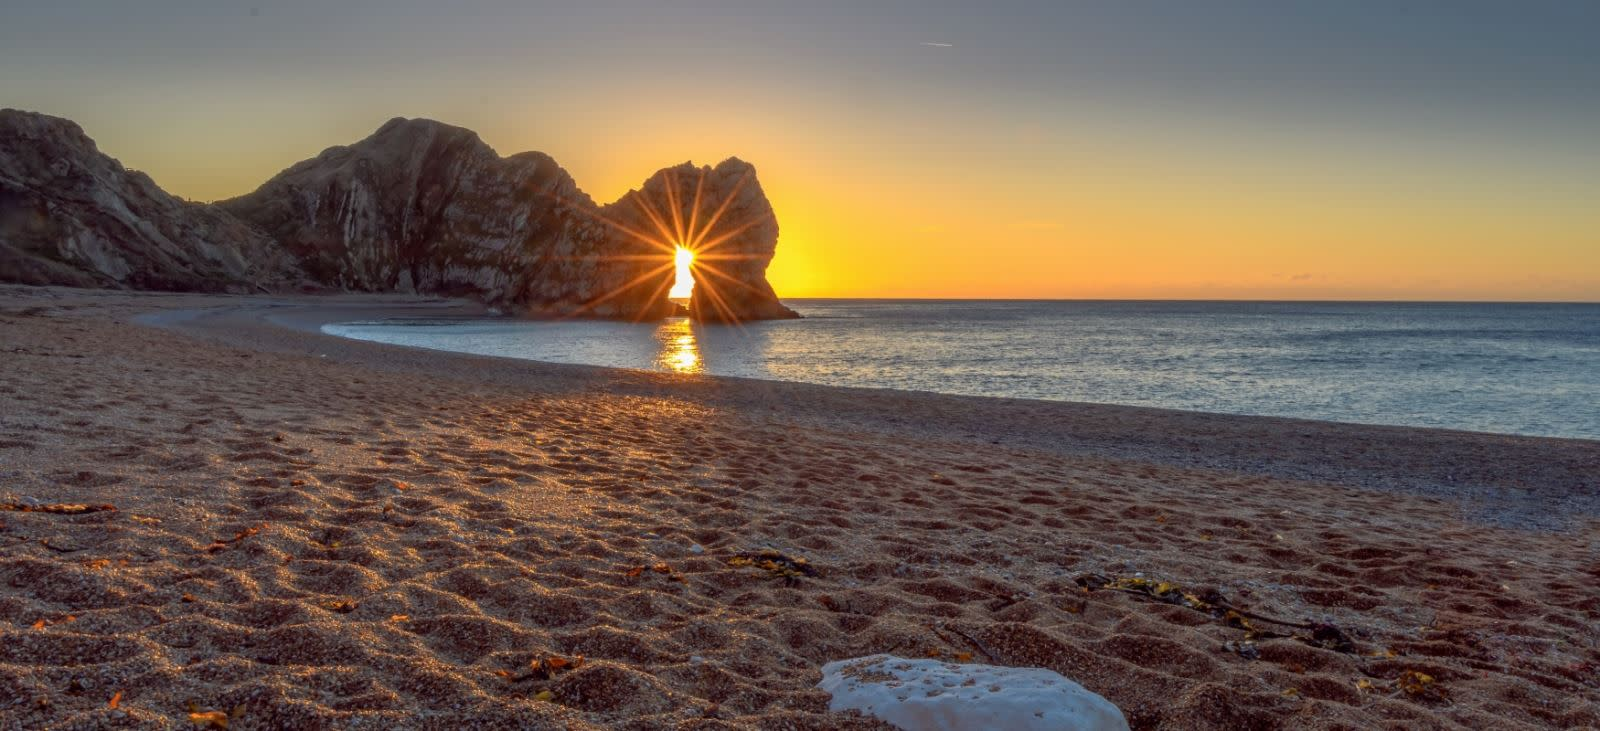 A glorious sight of the sun rising through the arc of Durdle Door